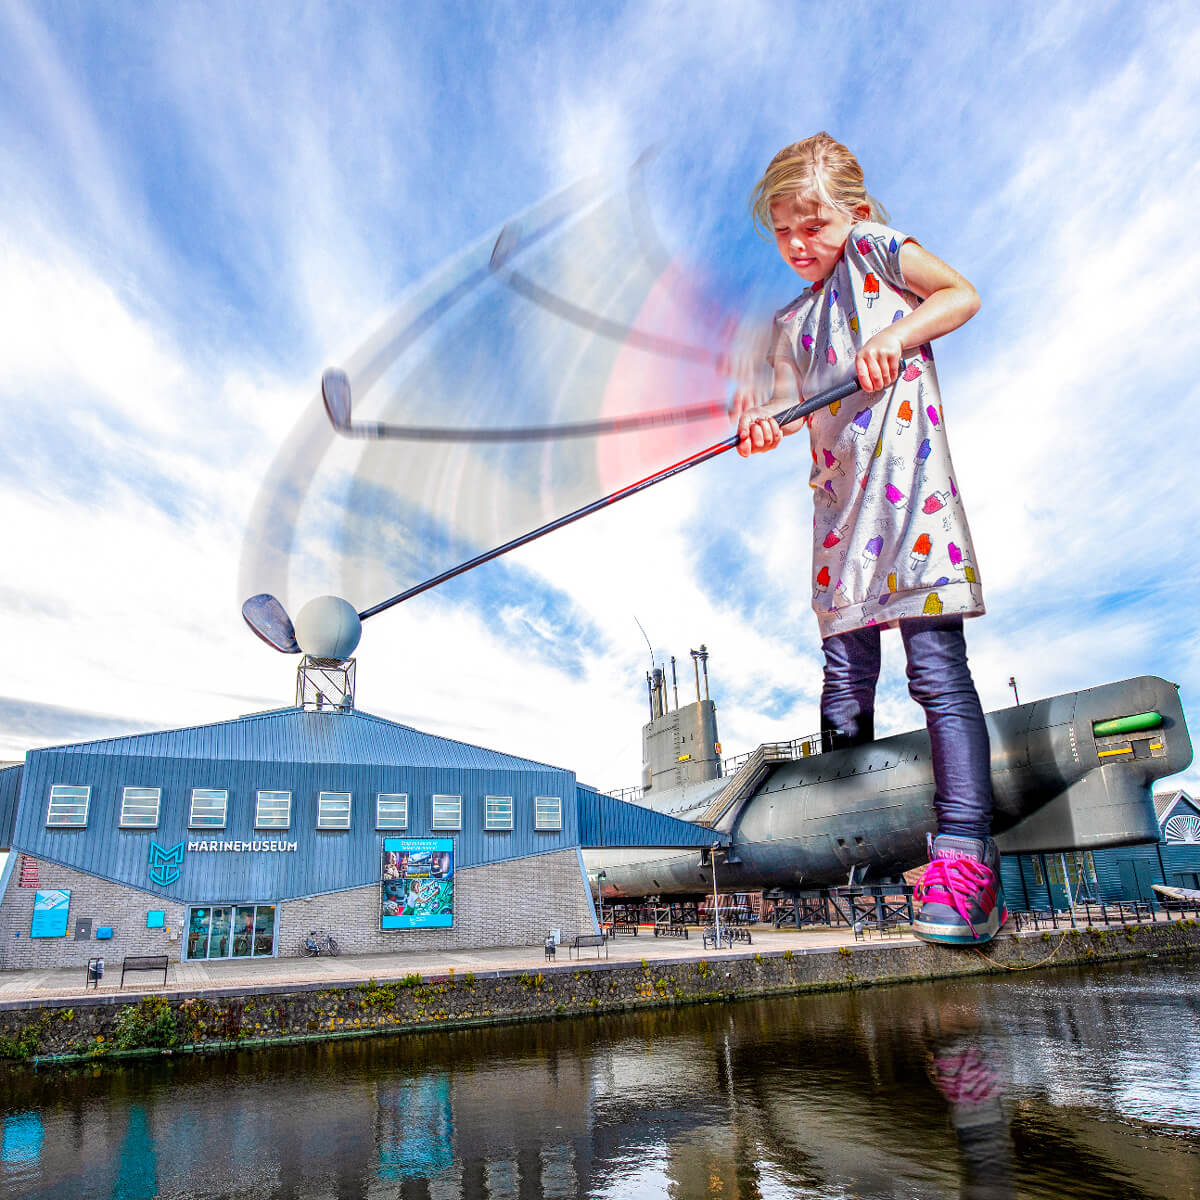 Big Girl Golf - Photoshop - Photomanipulation - Marine Museum Den Helder